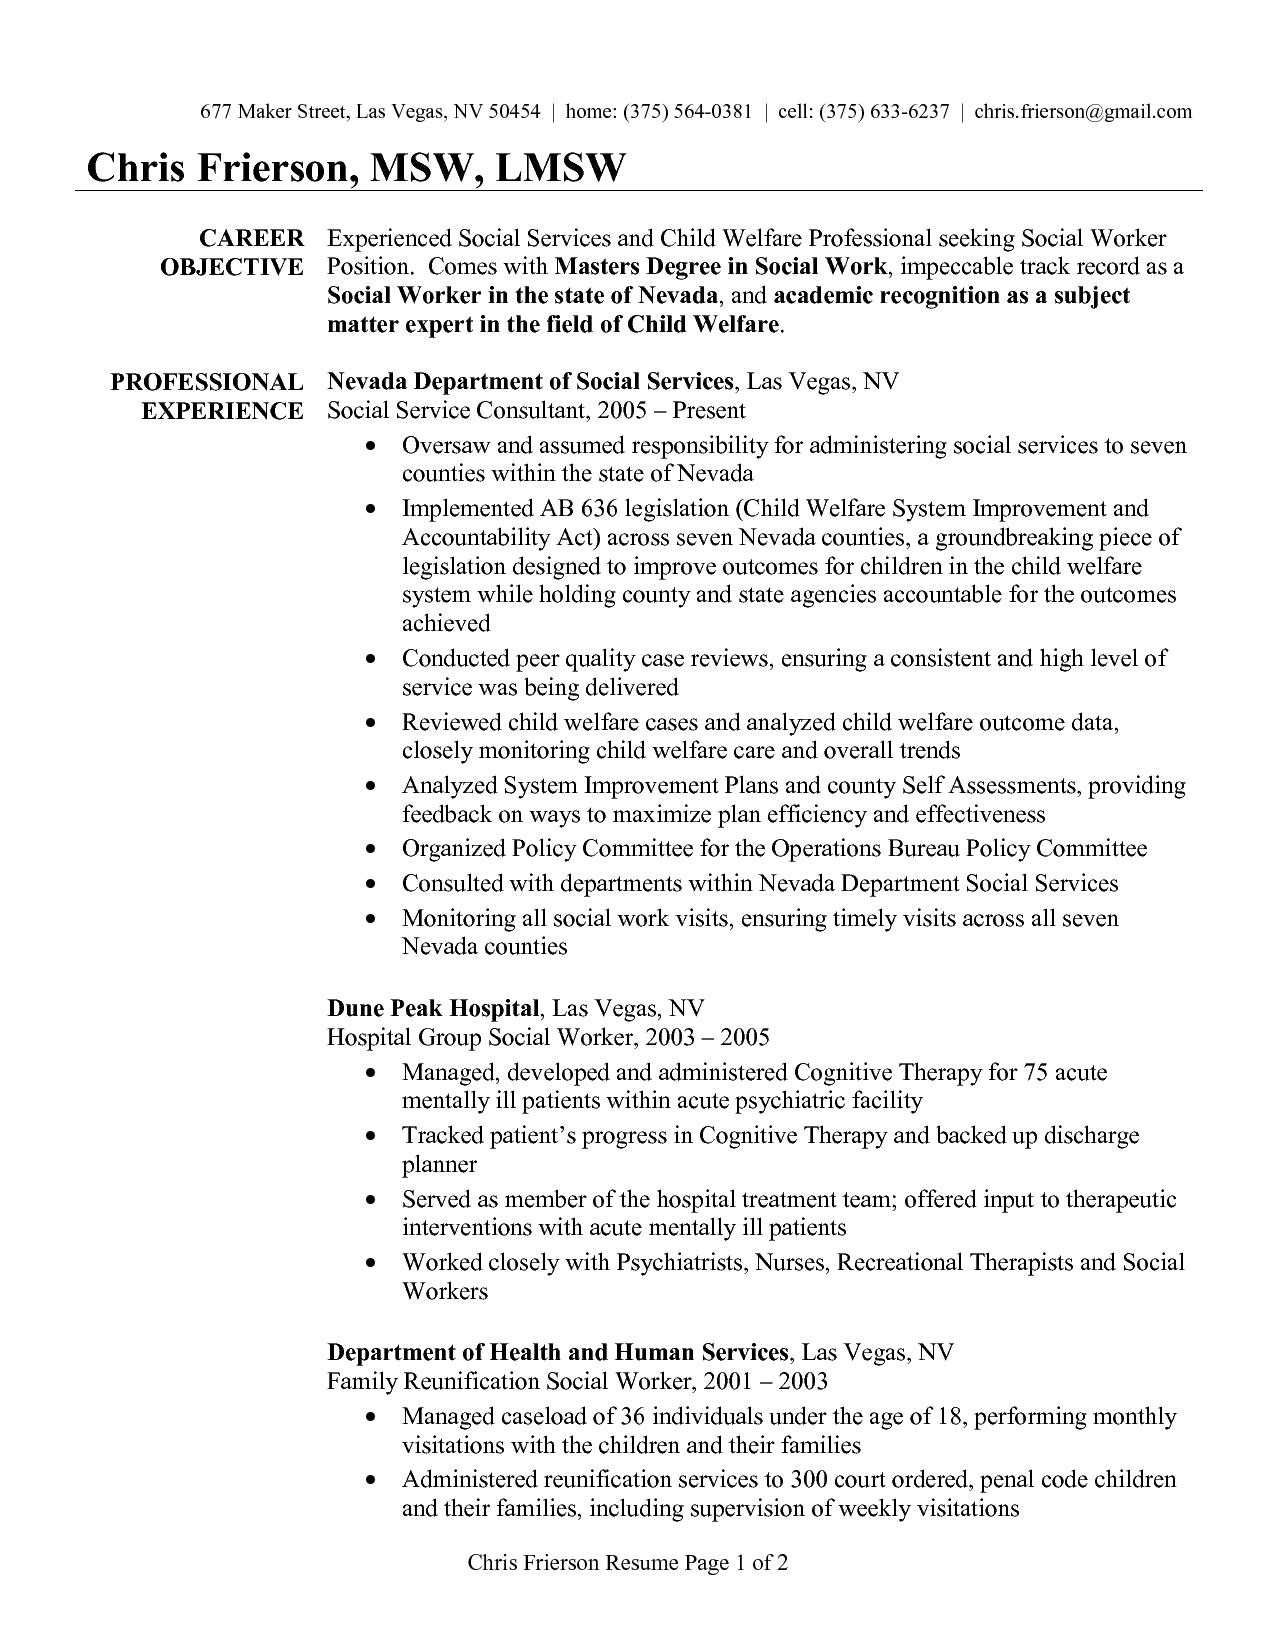 Social Worker Resume Examples Social Work Resume Objective Statement